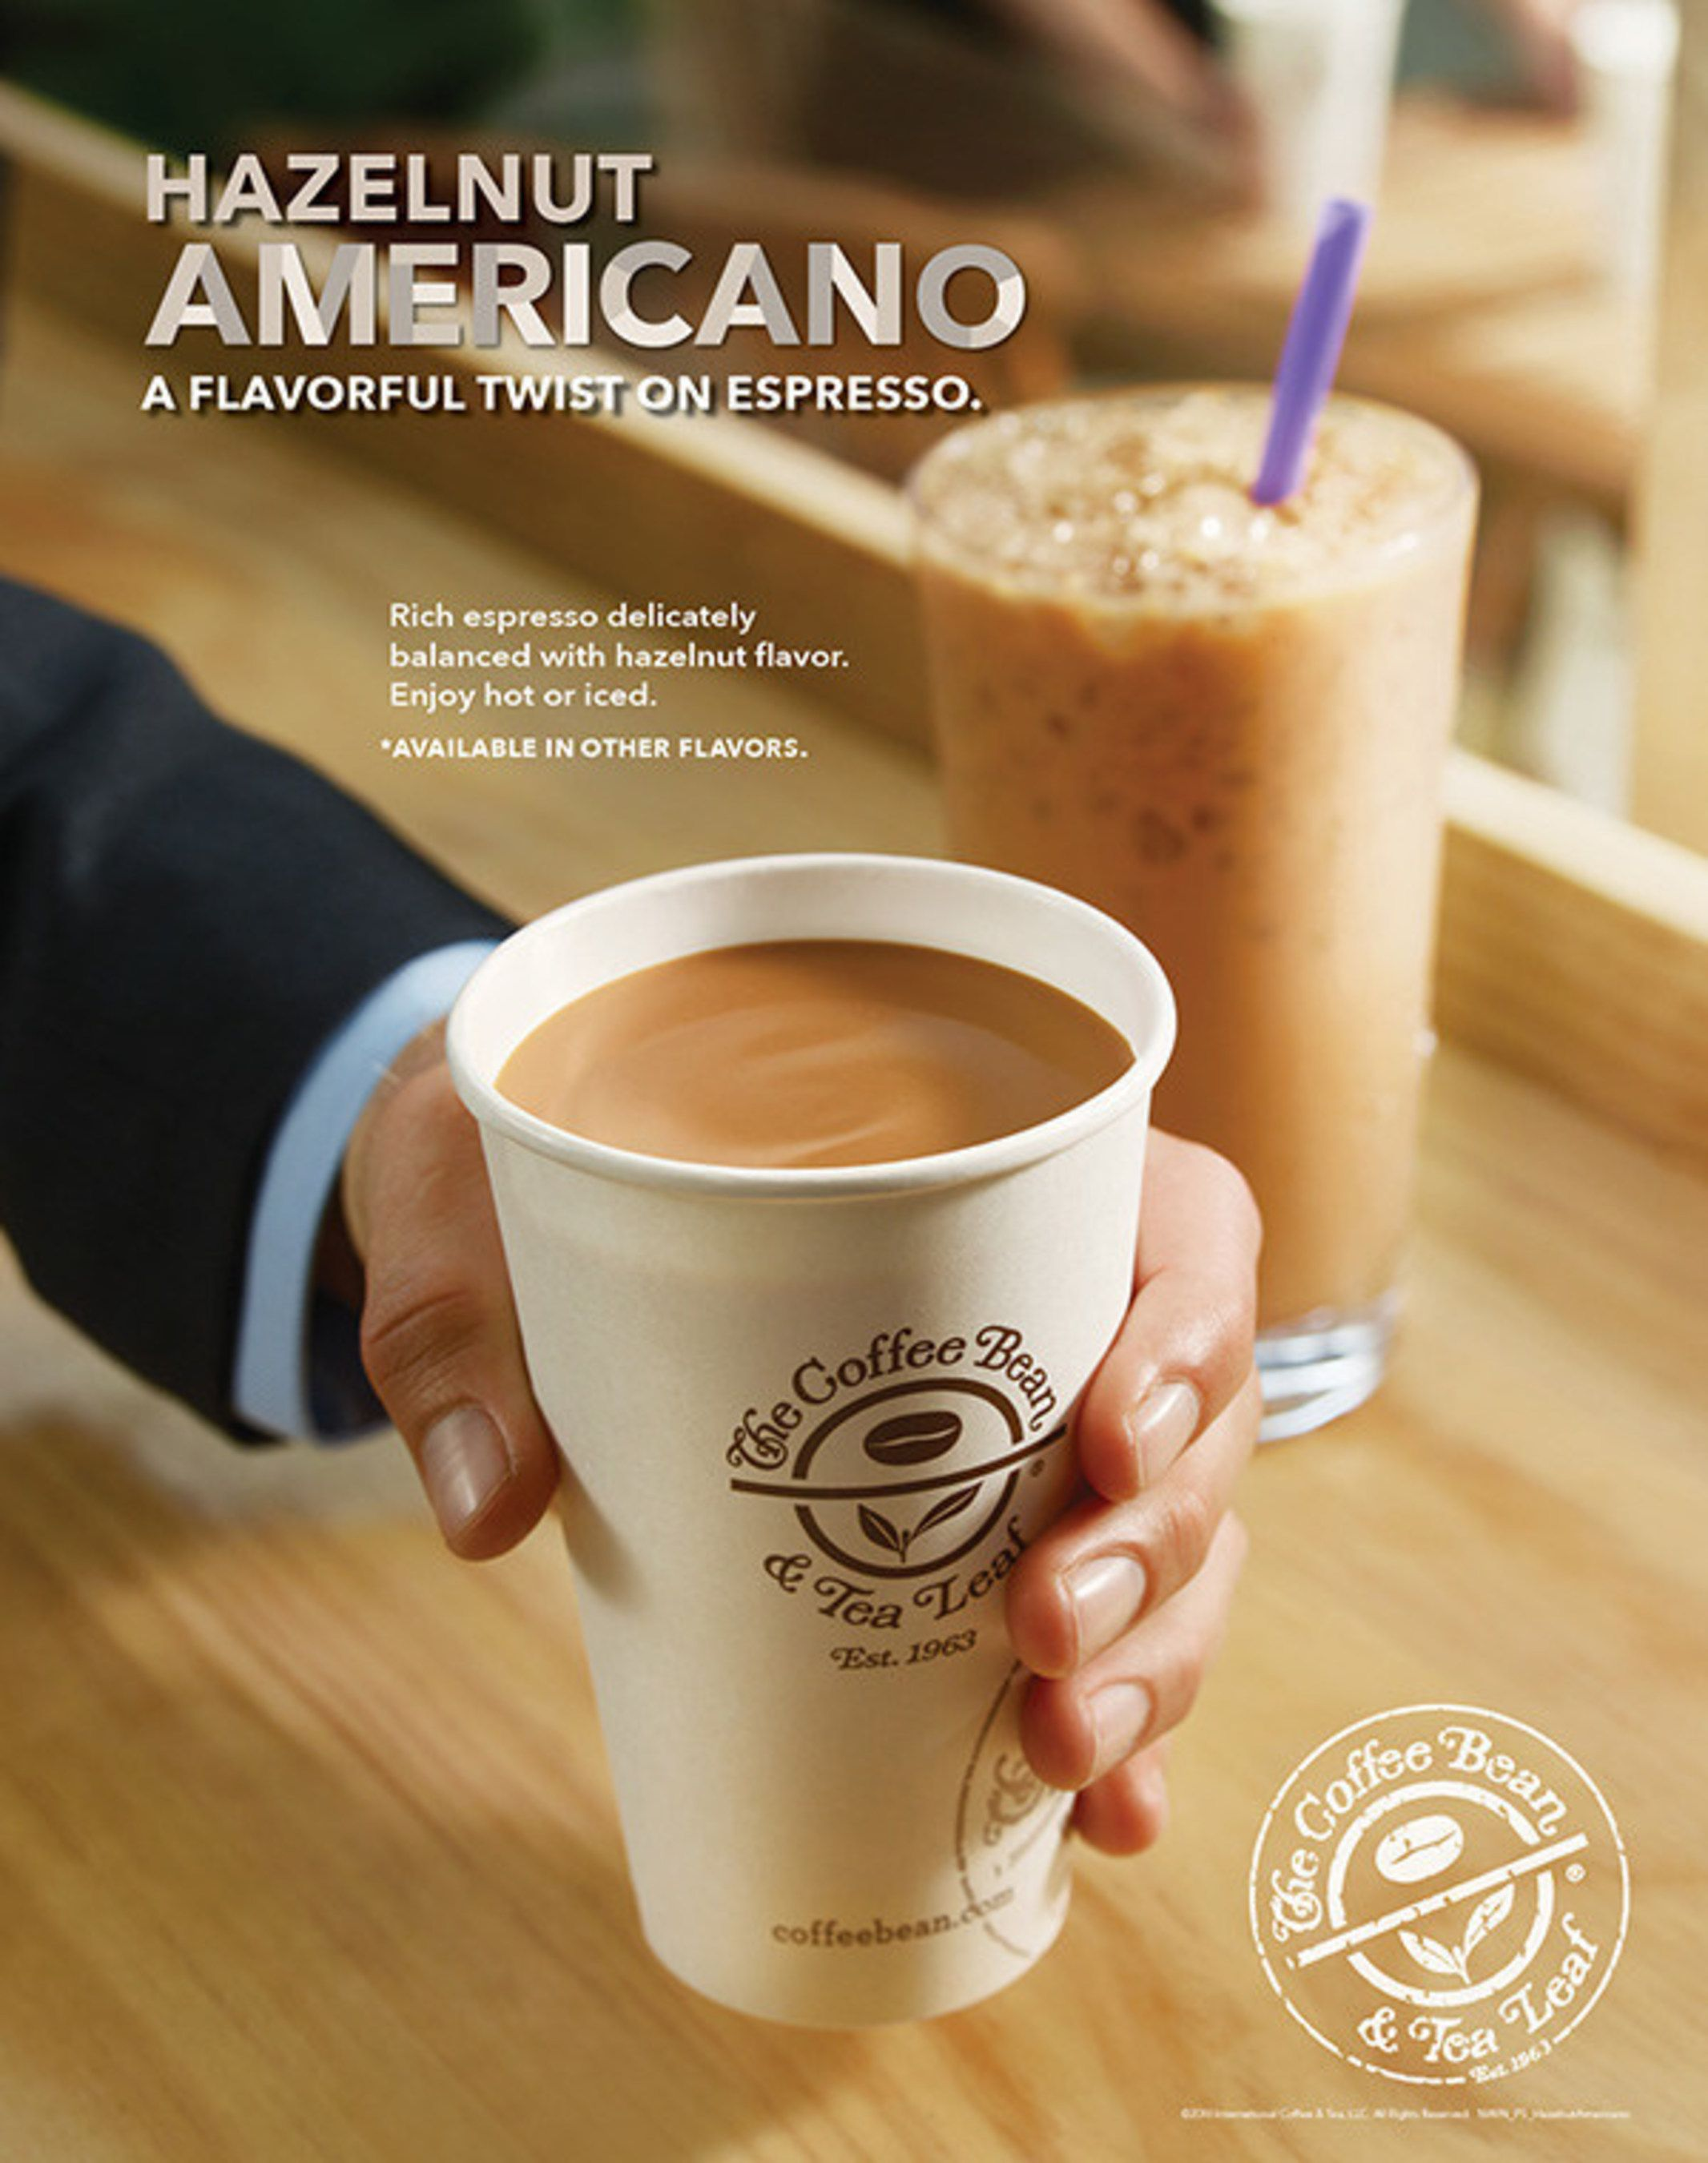 Coffee Bean And Tea Leaf Latte Caffeine Content In 2020 Healthy Iced Coffee Coffee Recipes Chocolate Coffee Beans